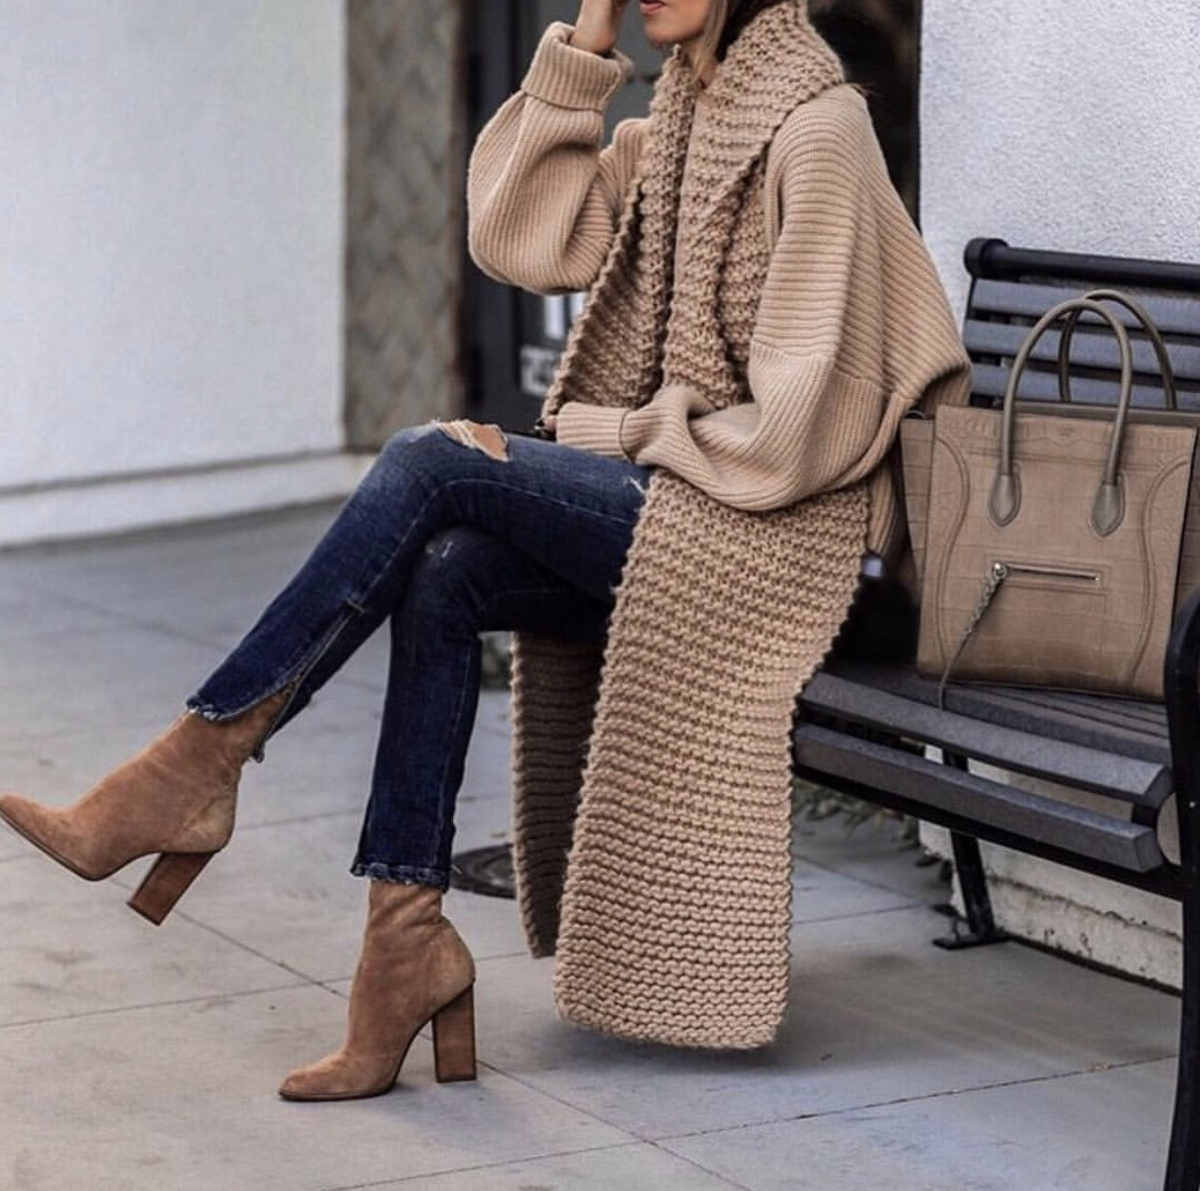 fashion blogger lolario style dresses up stylish thanksgiving outfits featuring a chunky knit sweater distressed jeans and booties | lolariostyle.com